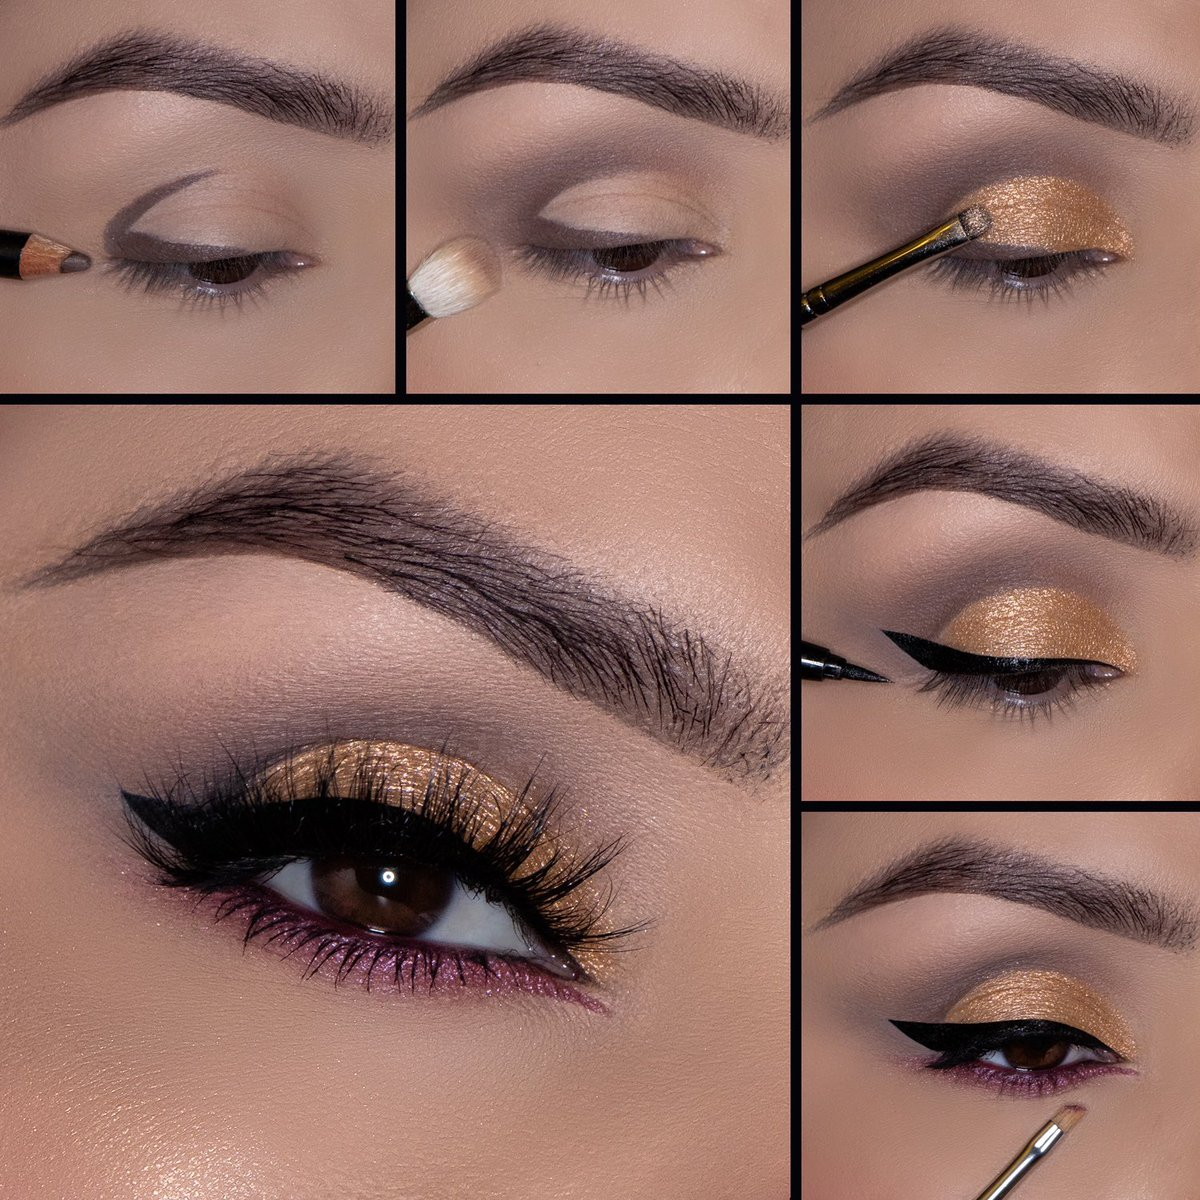 You can create this gorgeous eye look using the @thalia X Motives BESOS Palette 🖤  Add this versatile, all-in-one palette to your collection today. 💋   Shop BESOS U.S.:  Shop BESOS Global:   #Thalia #MotivesCosmetics